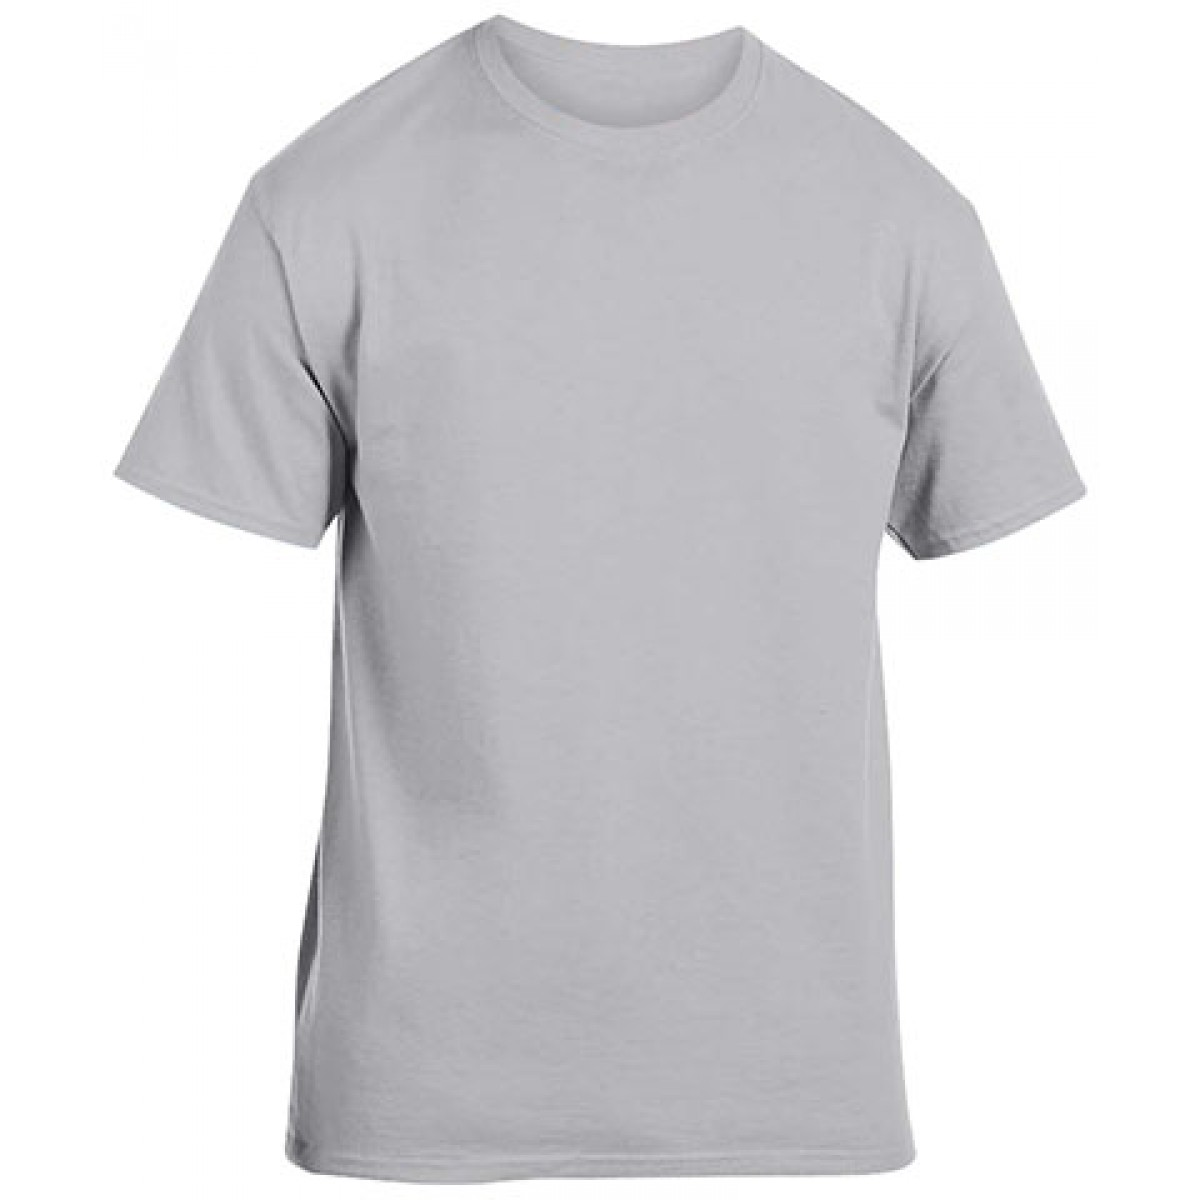 Heavy Cotton Activewear T-Shirt-Ash Gray-S